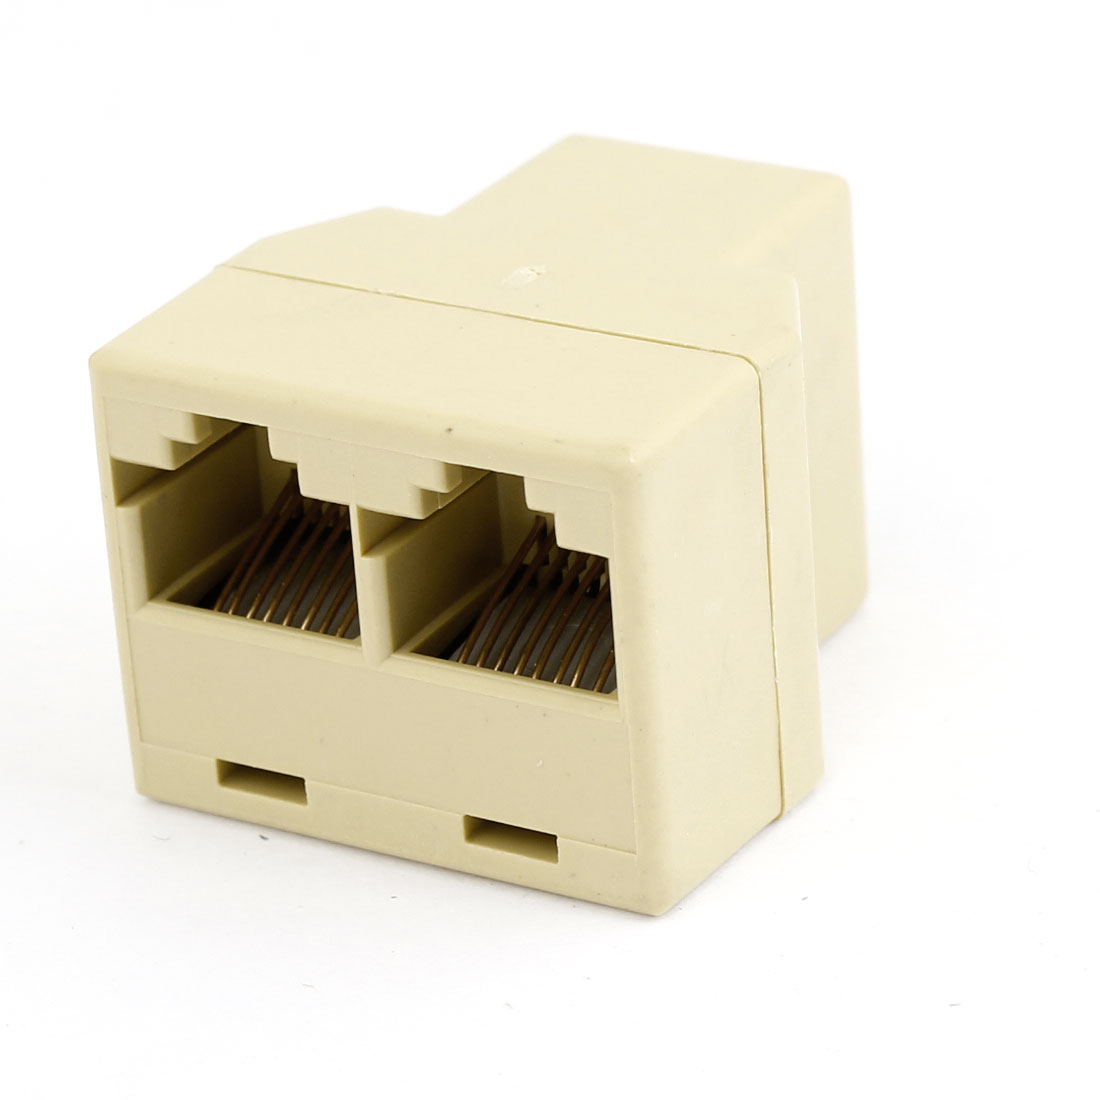 Telephone Network RJ45 Double Female Adapter Connector Beige